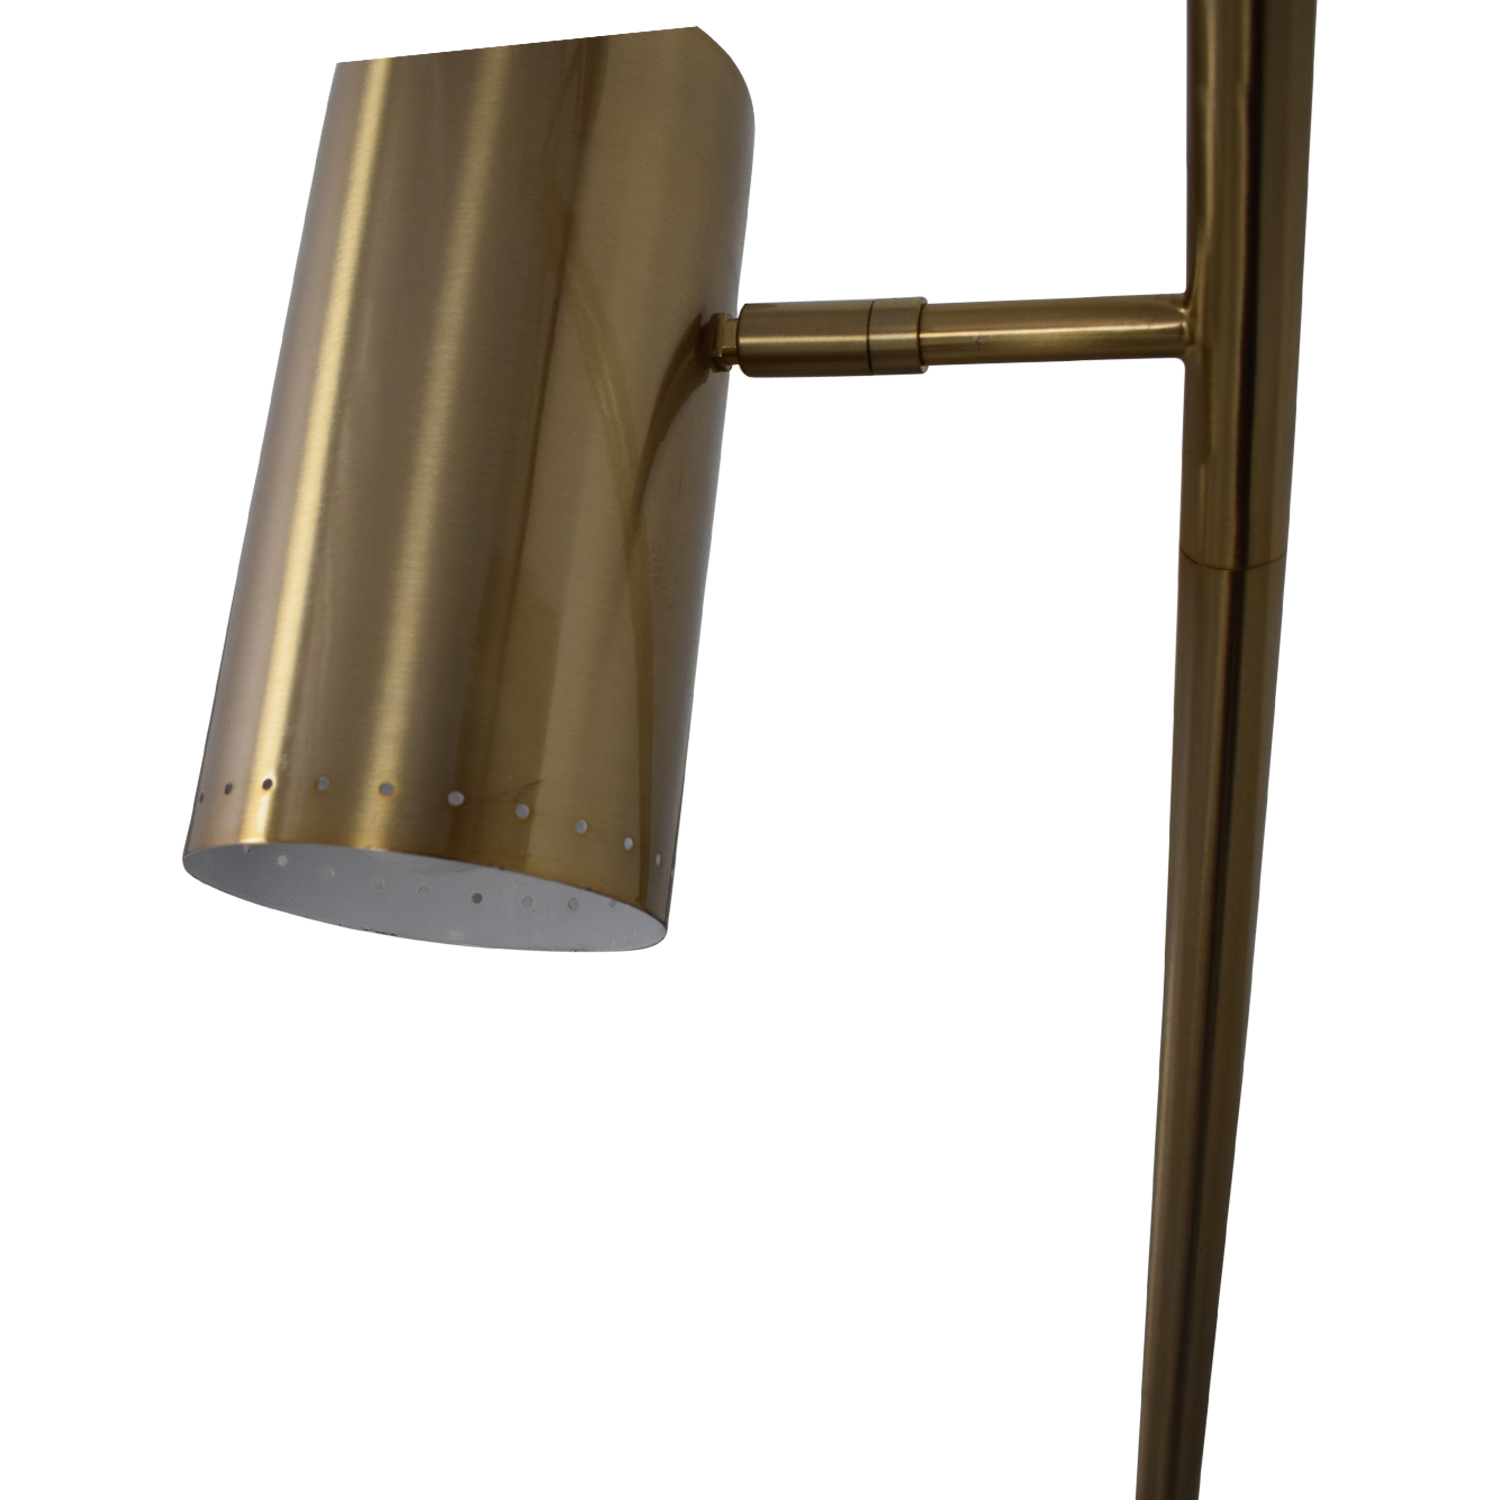 CB2 CB2 Trio Brushed Nickel Floor Lamp second hand